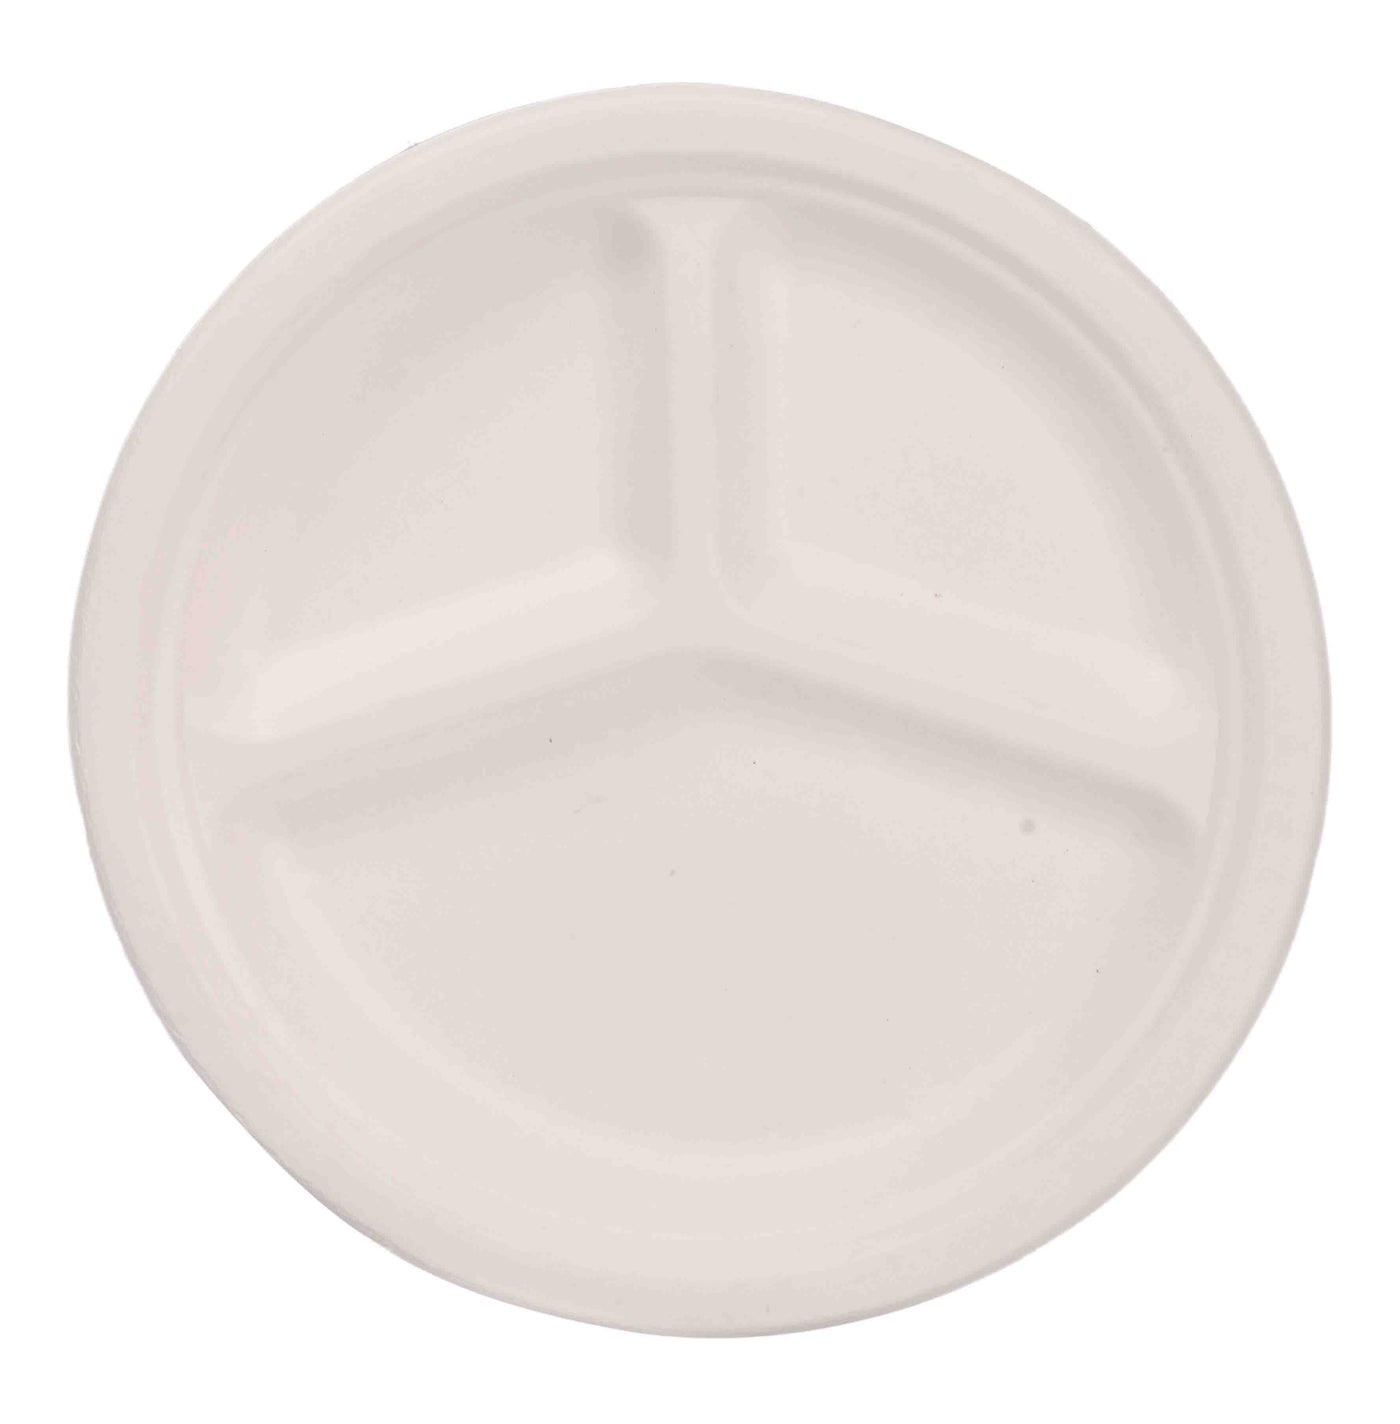 eco friendly 3 compartment disposable plates